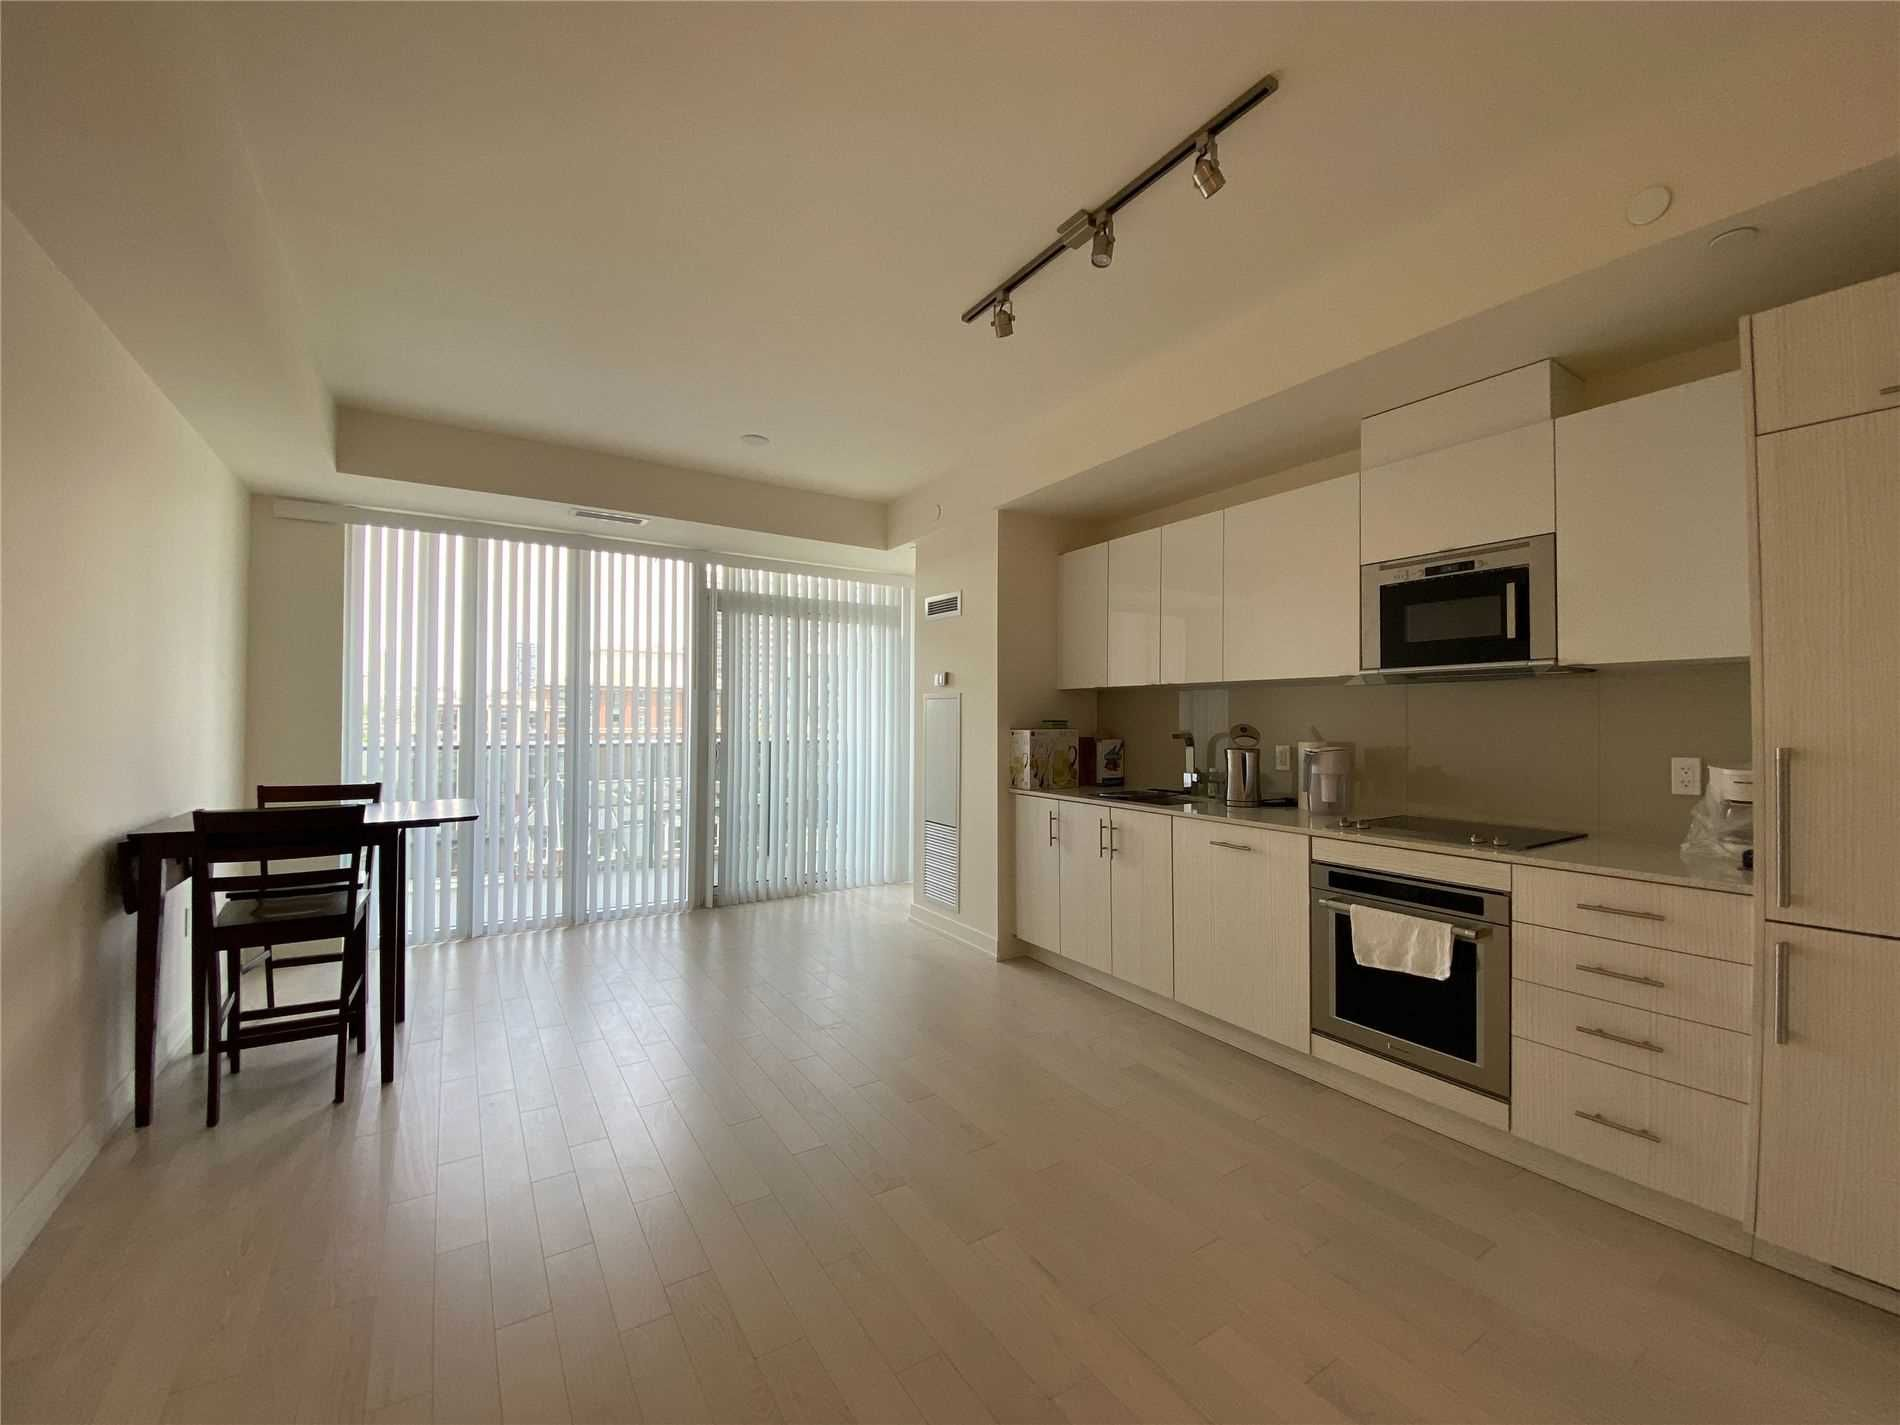 330 Richmond St W, unit 816 for rent in Toronto - image #2